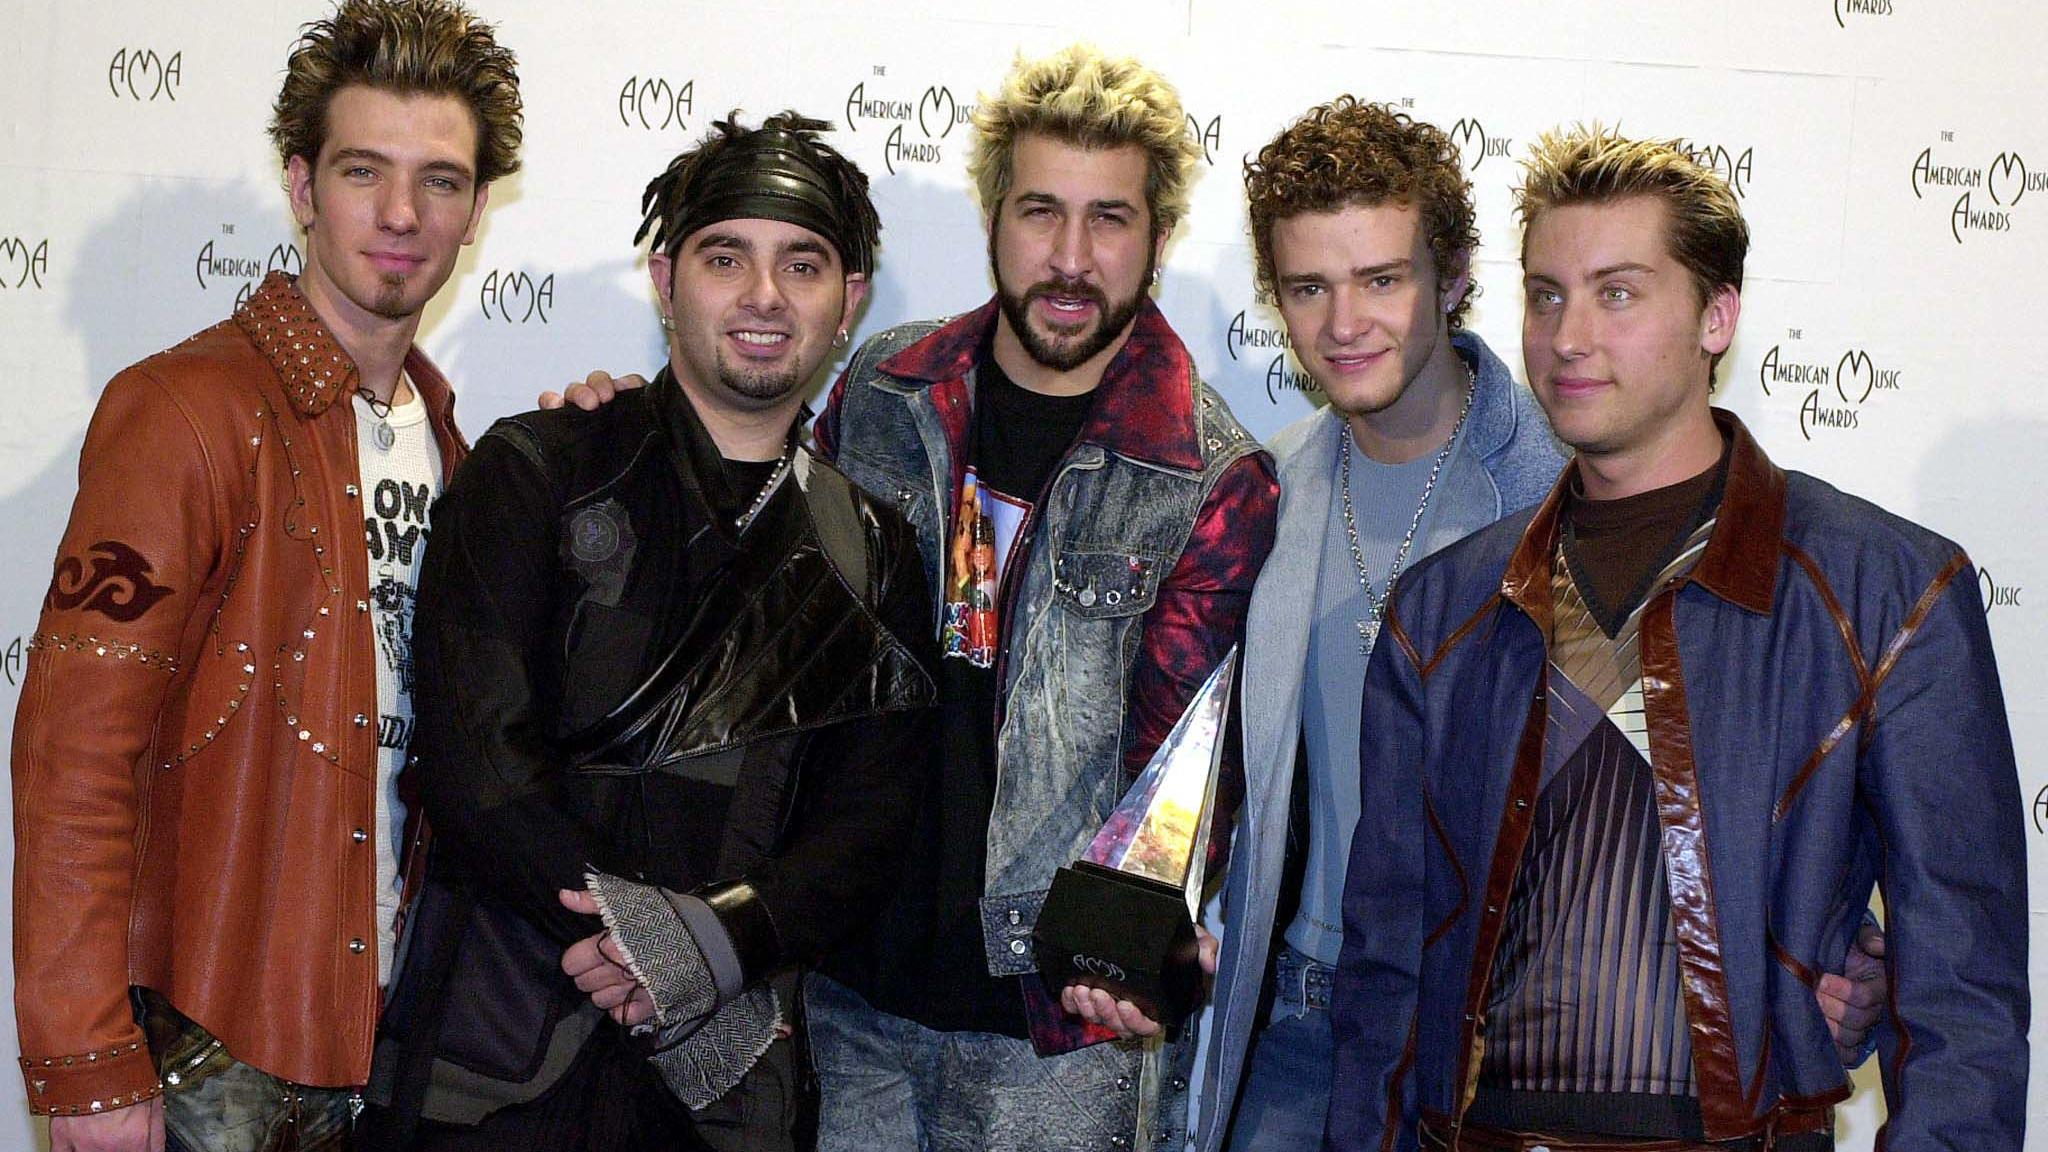 LOS ANGELES, UNITED STATES:  (L to R)  J.C. Chasez, Chris Kirkpatrick, Joey Fatone, Justin Timberlake, Lance Bass of the group 'N Sync, pose with their award for Internet Artist of the Year at the 28th Annual American Music Awards 08 January 2001 in